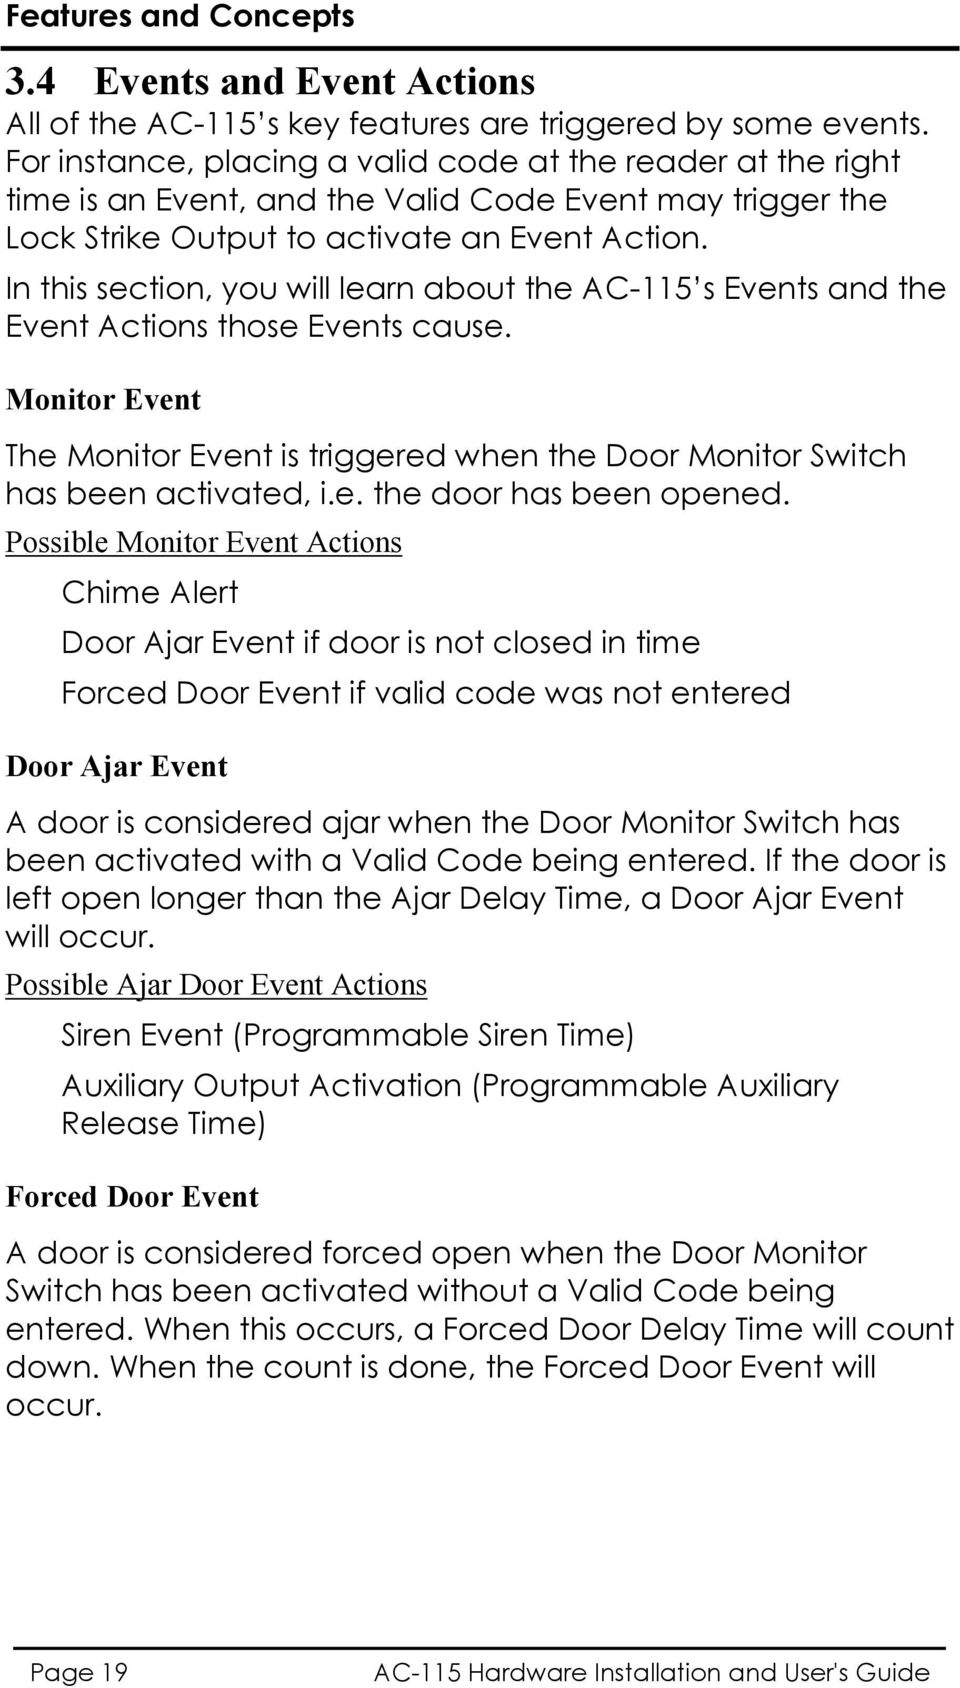 In this section, you will learn about the AC-115 s Events and the Event Actions those Events cause. Monitor Event The Monitor Event is triggered when the Monitor Switch has been activated, i.e. the door has been opened.